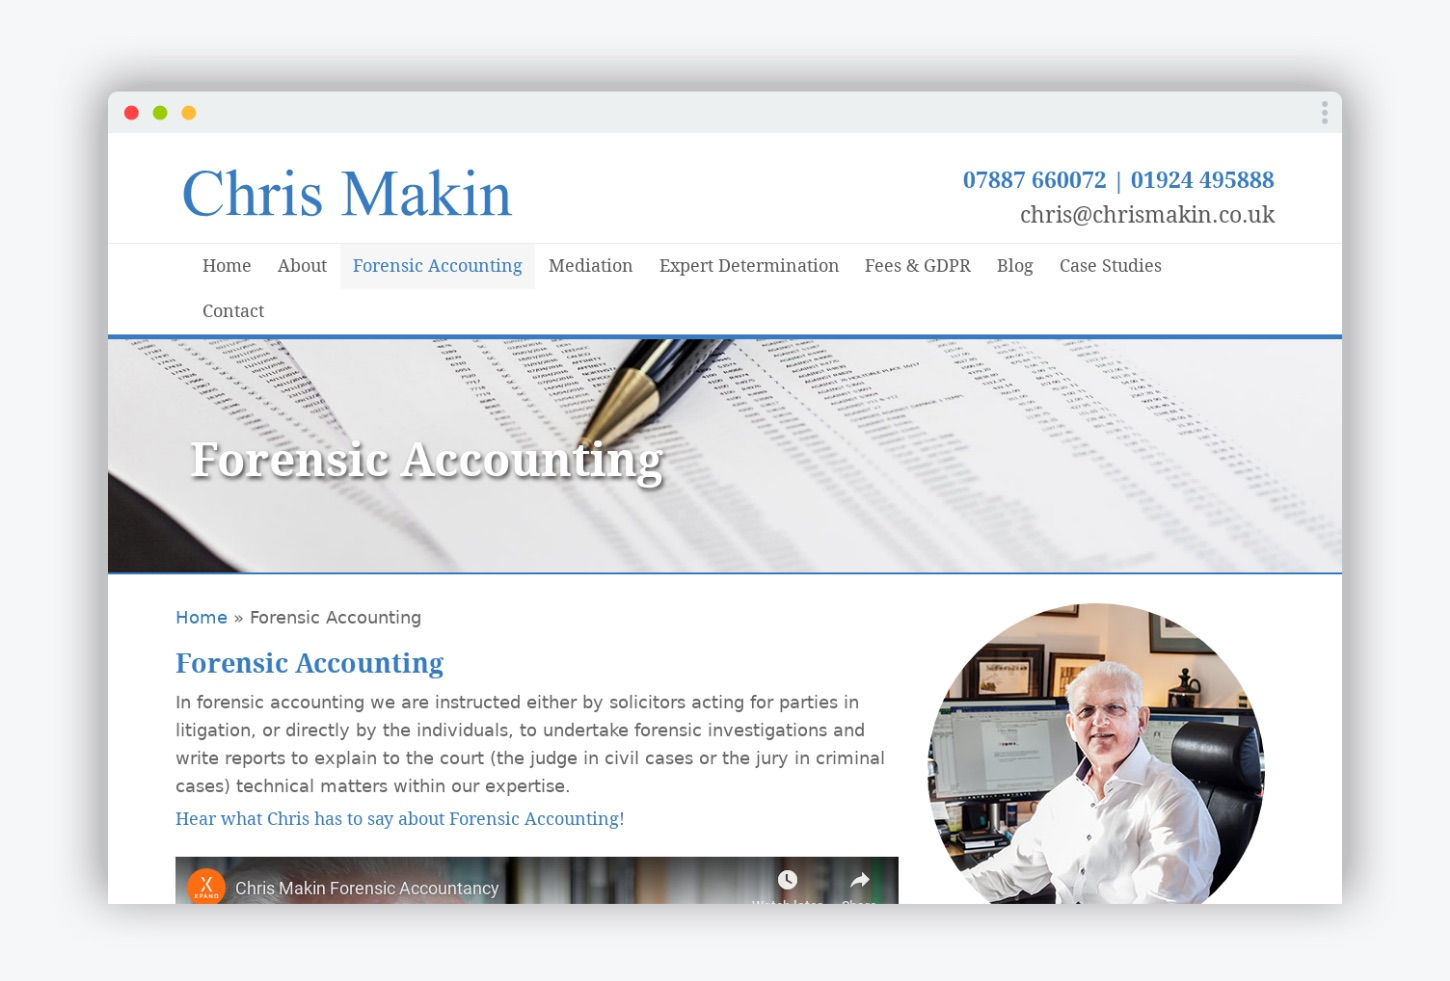 Chris Makin Forensic Accountant home page